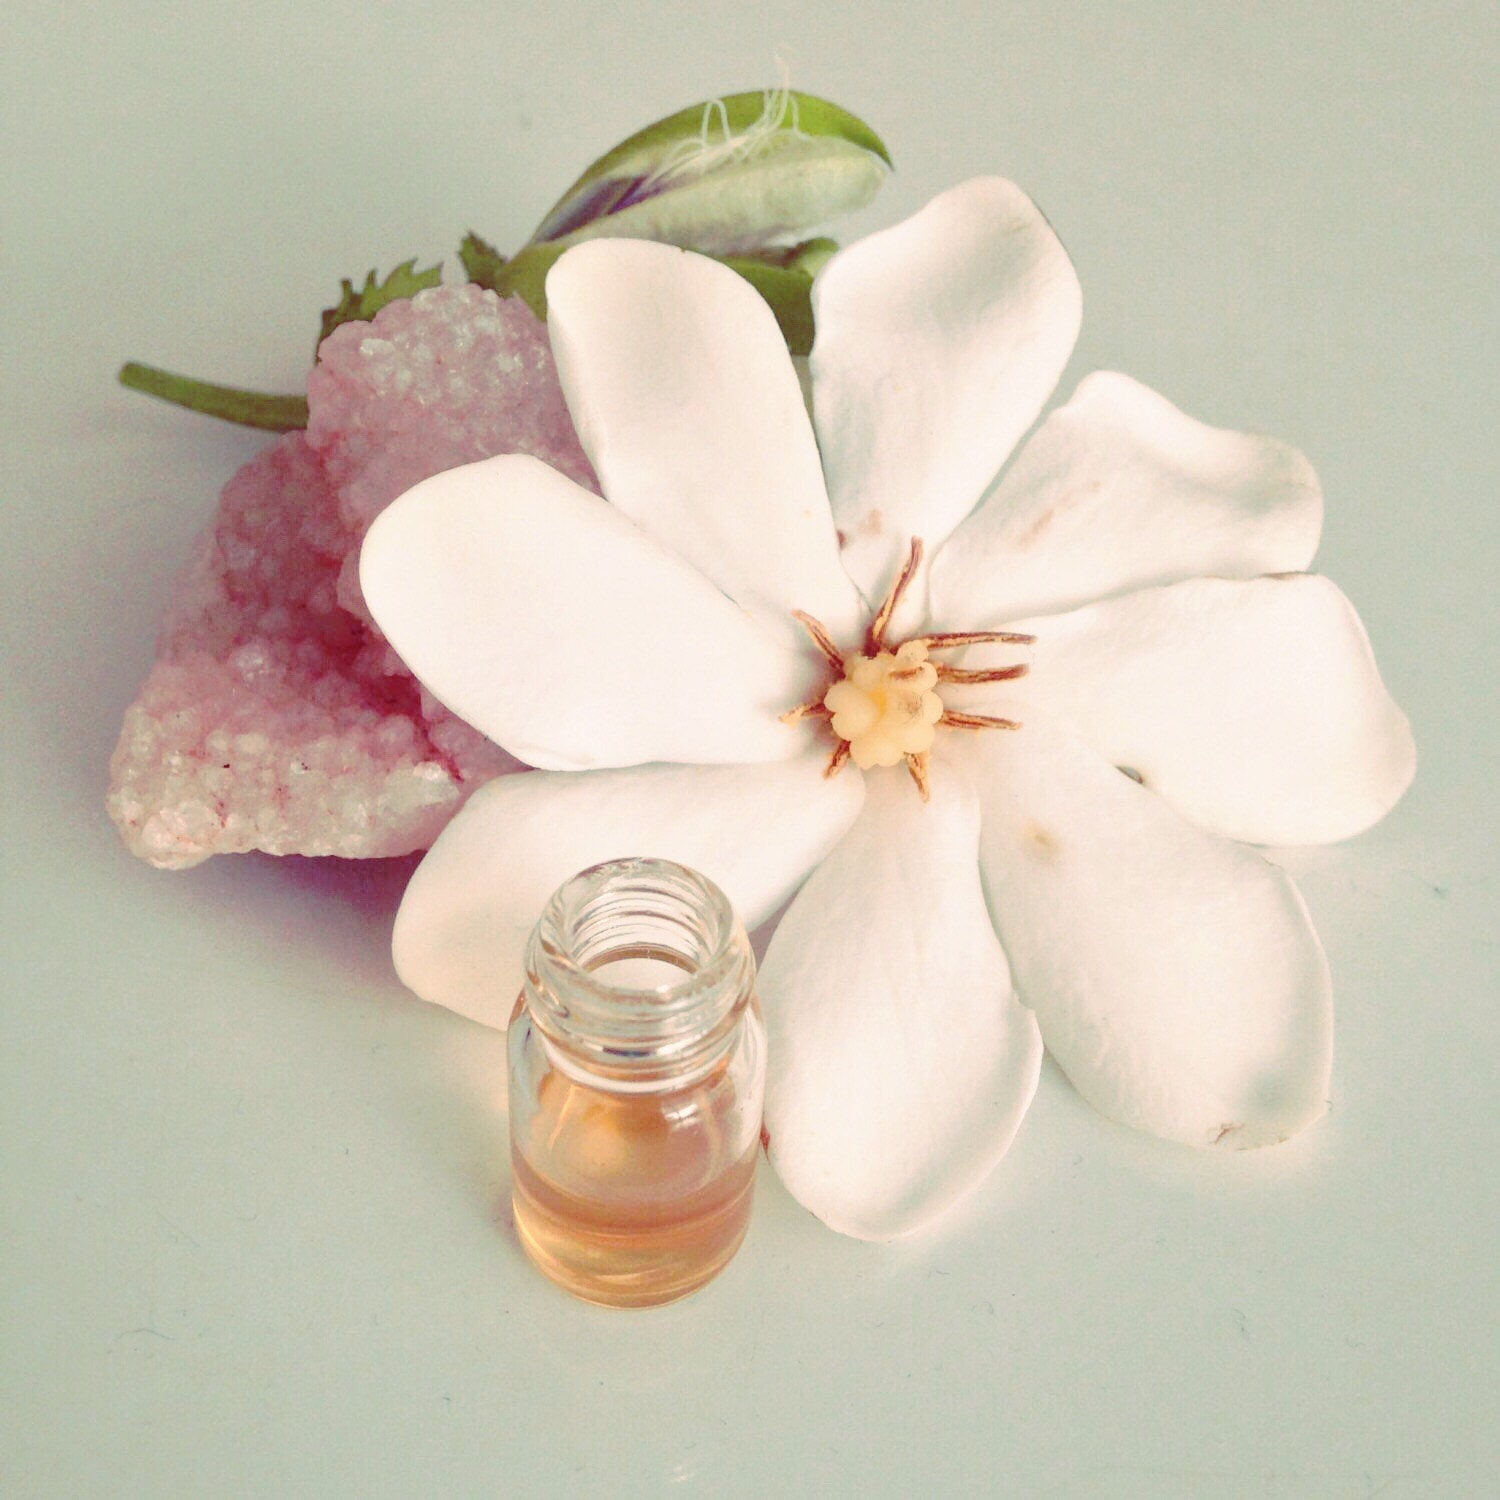 Chrysoprase • natural perfume. tropical rice pudding studded w  creamy  frangipani blossoms cce23ab7621